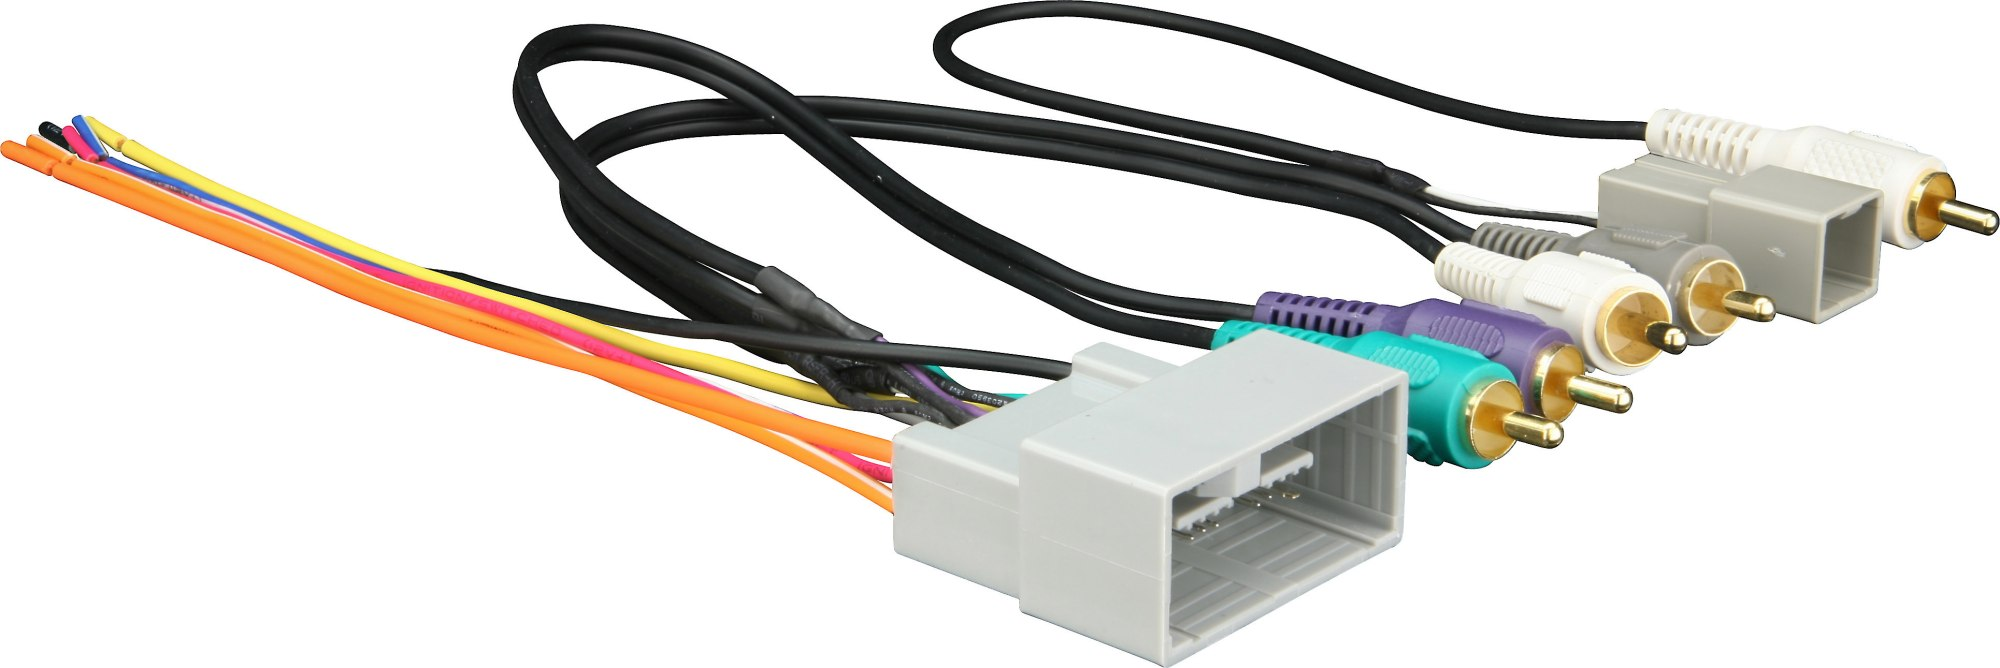 hight resolution of metra 70 1730 receiver wiring harness connect a new car stereo in select 2008 up honda vehicles with factory amp at crutchfield com